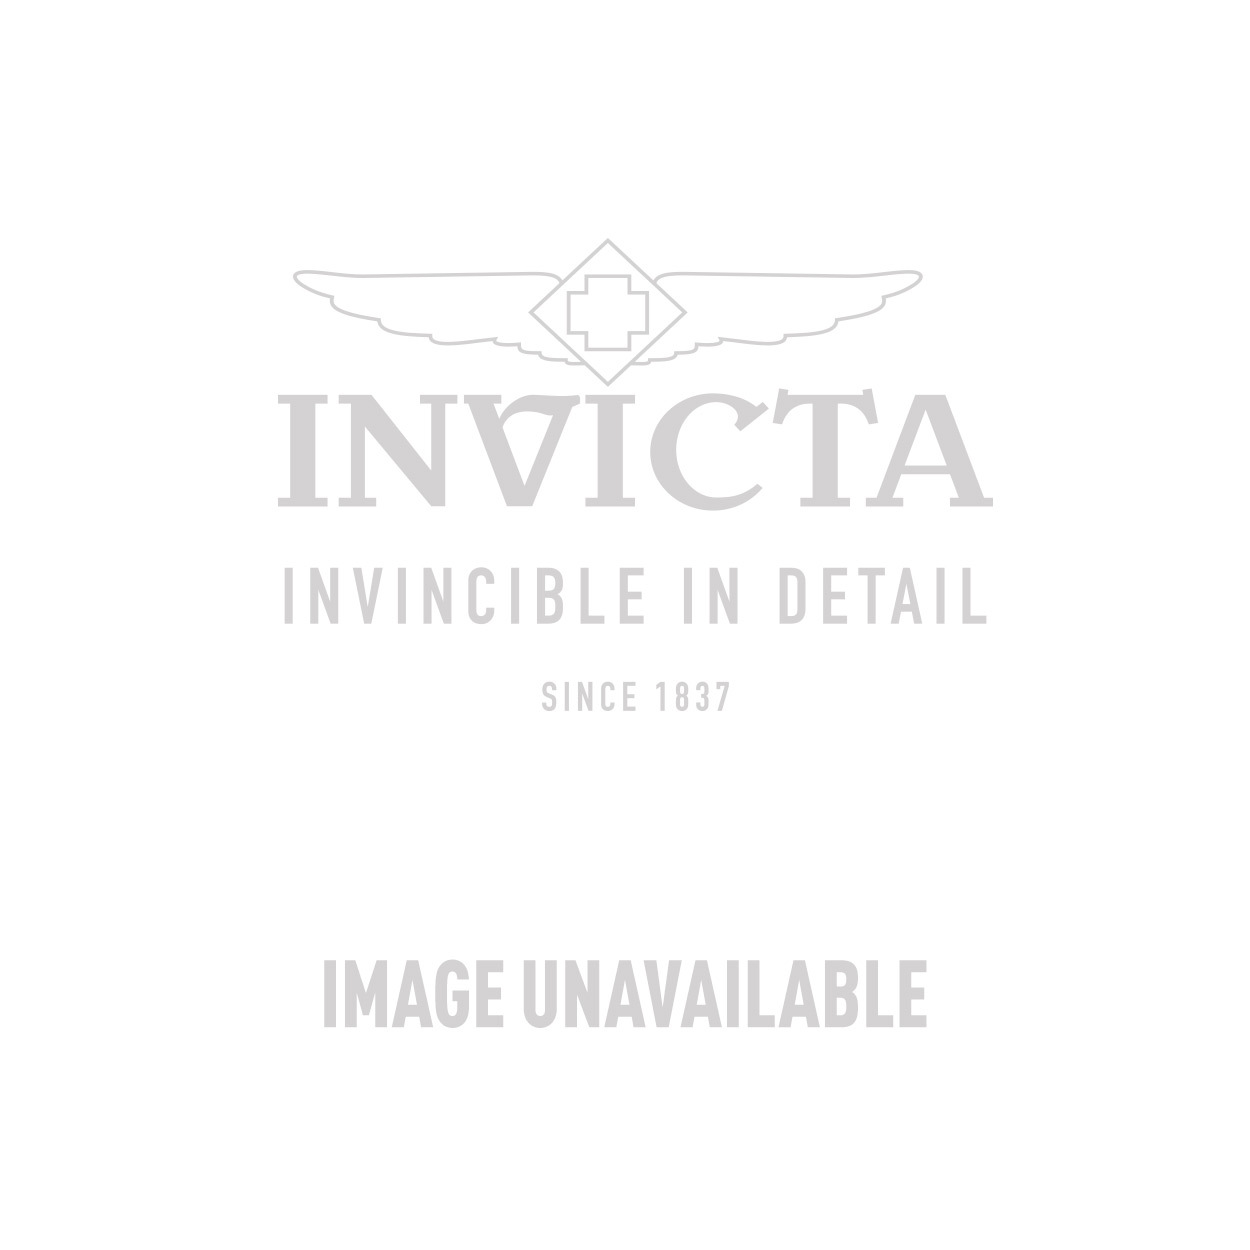 Invicta Specialty Swiss Movement Quartz Watch - Stainless Steel case Stainless Steel band - Model 0620